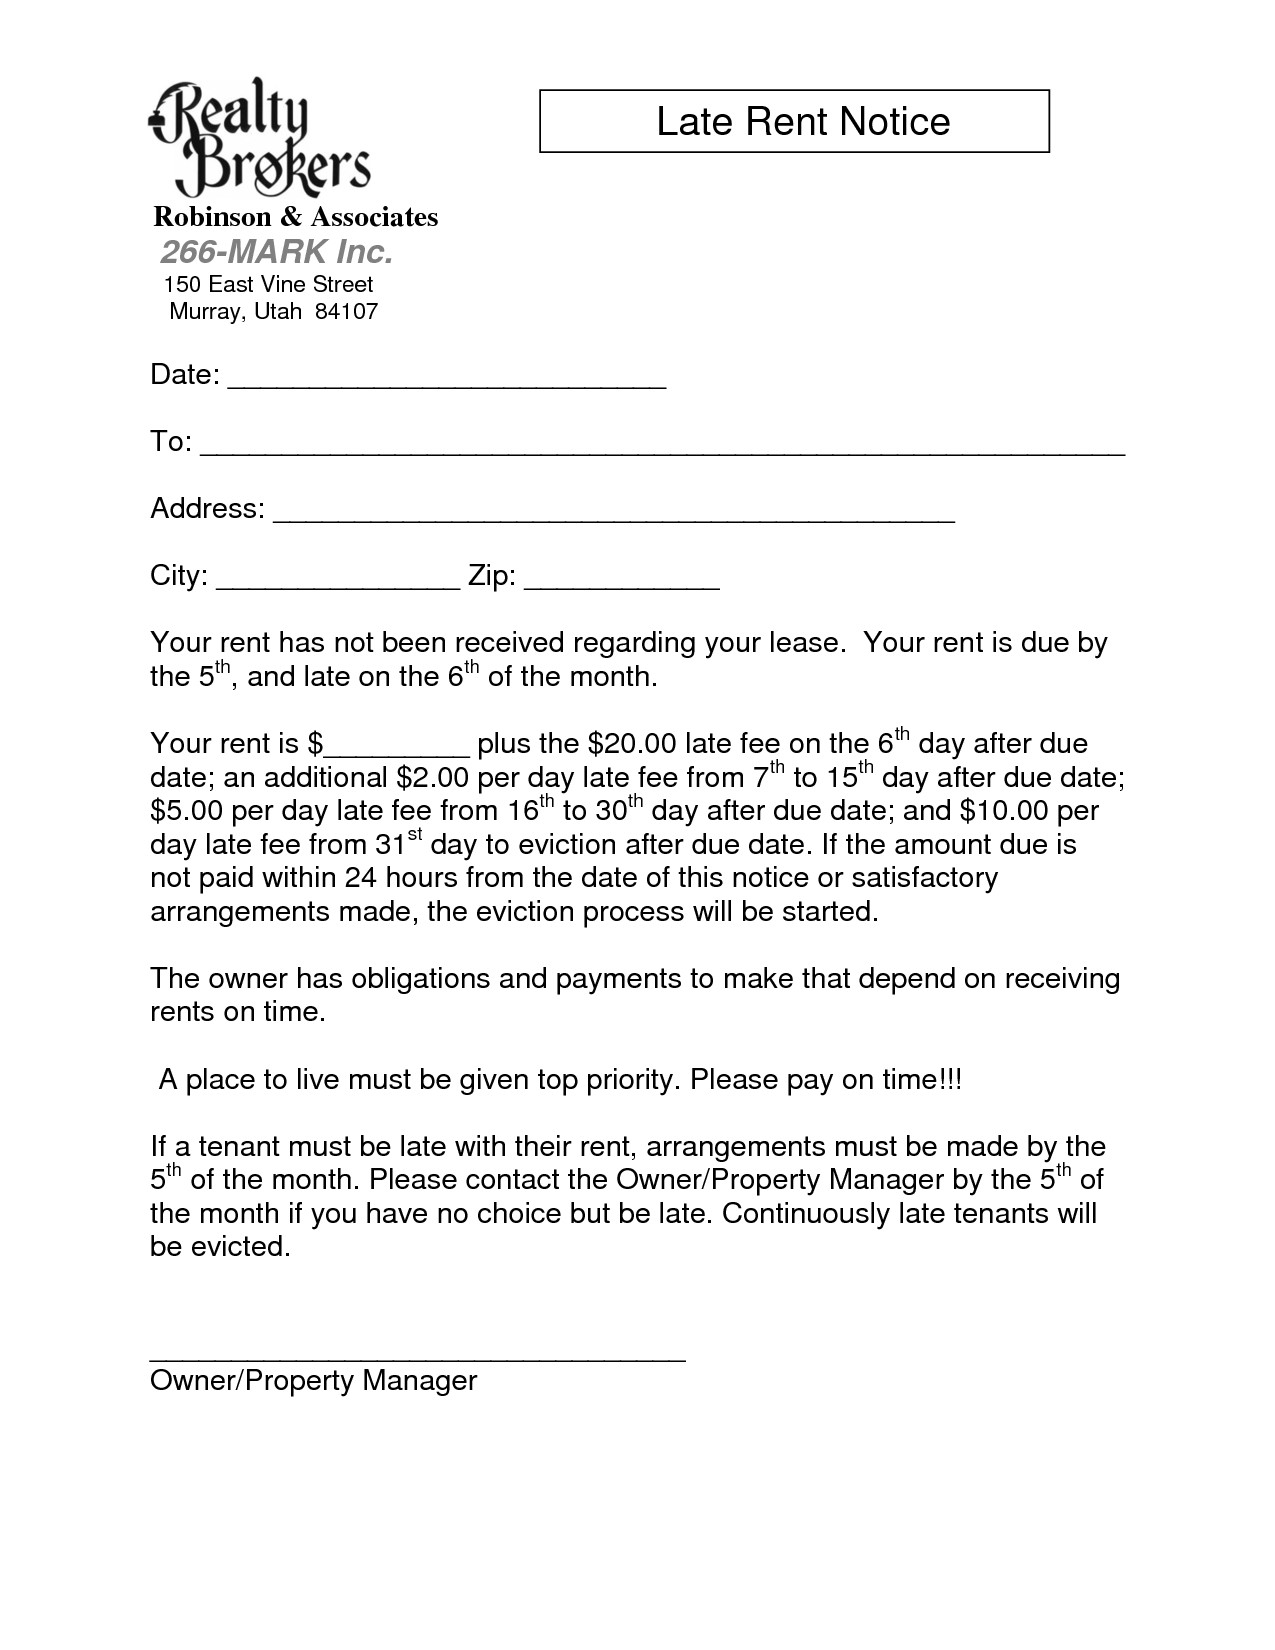 Late Rent Notice Template Late Rent Notice Template Images Sample Late Rent Notice